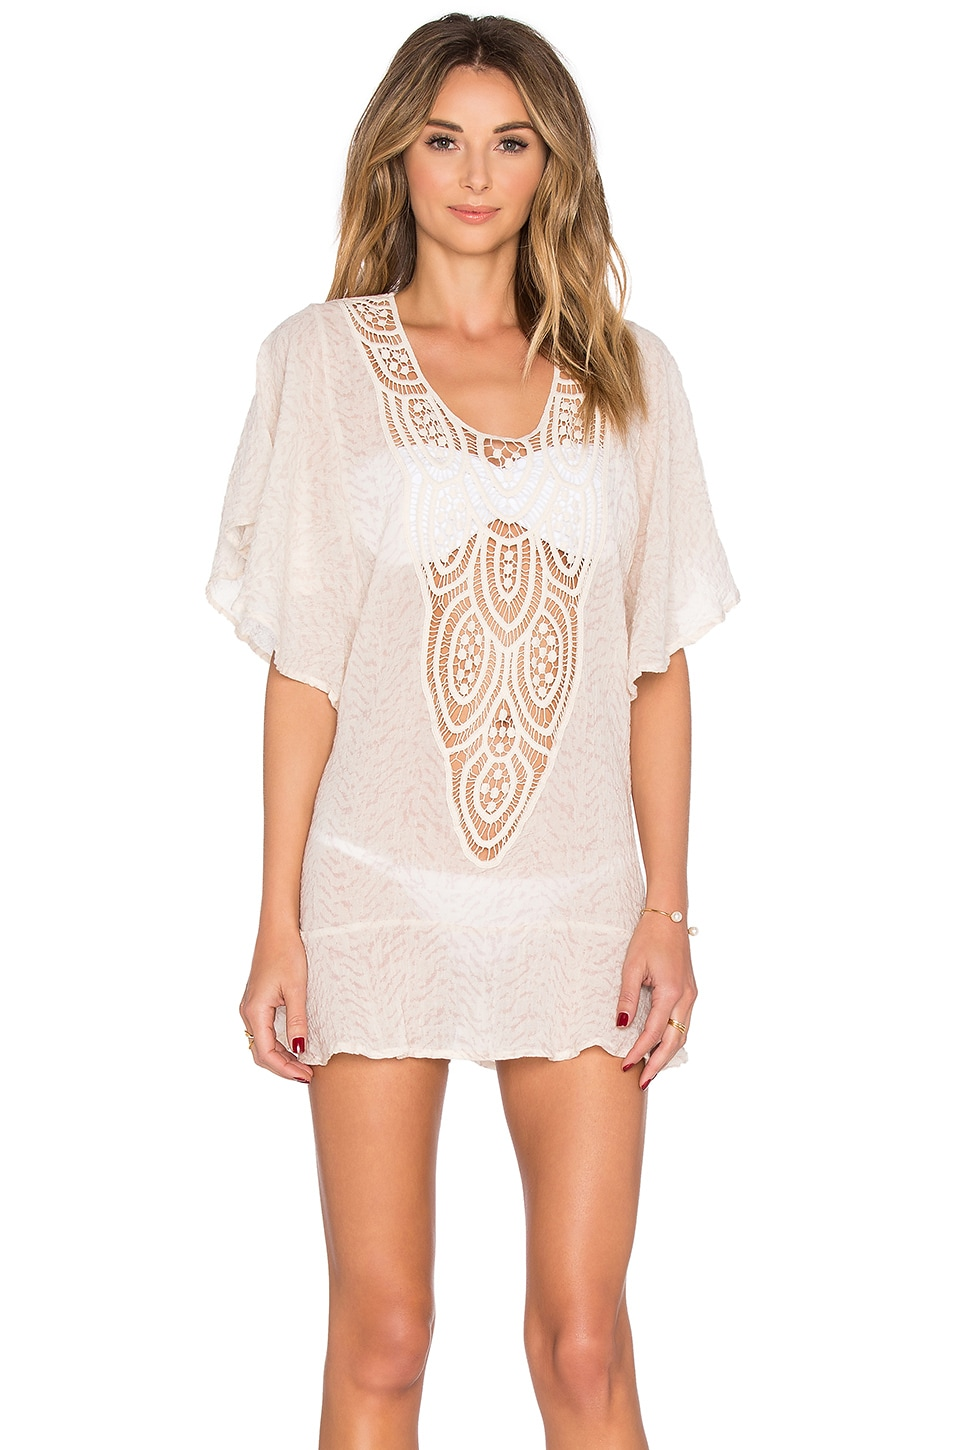 Sand Waves Malena Cover Up by eberjey